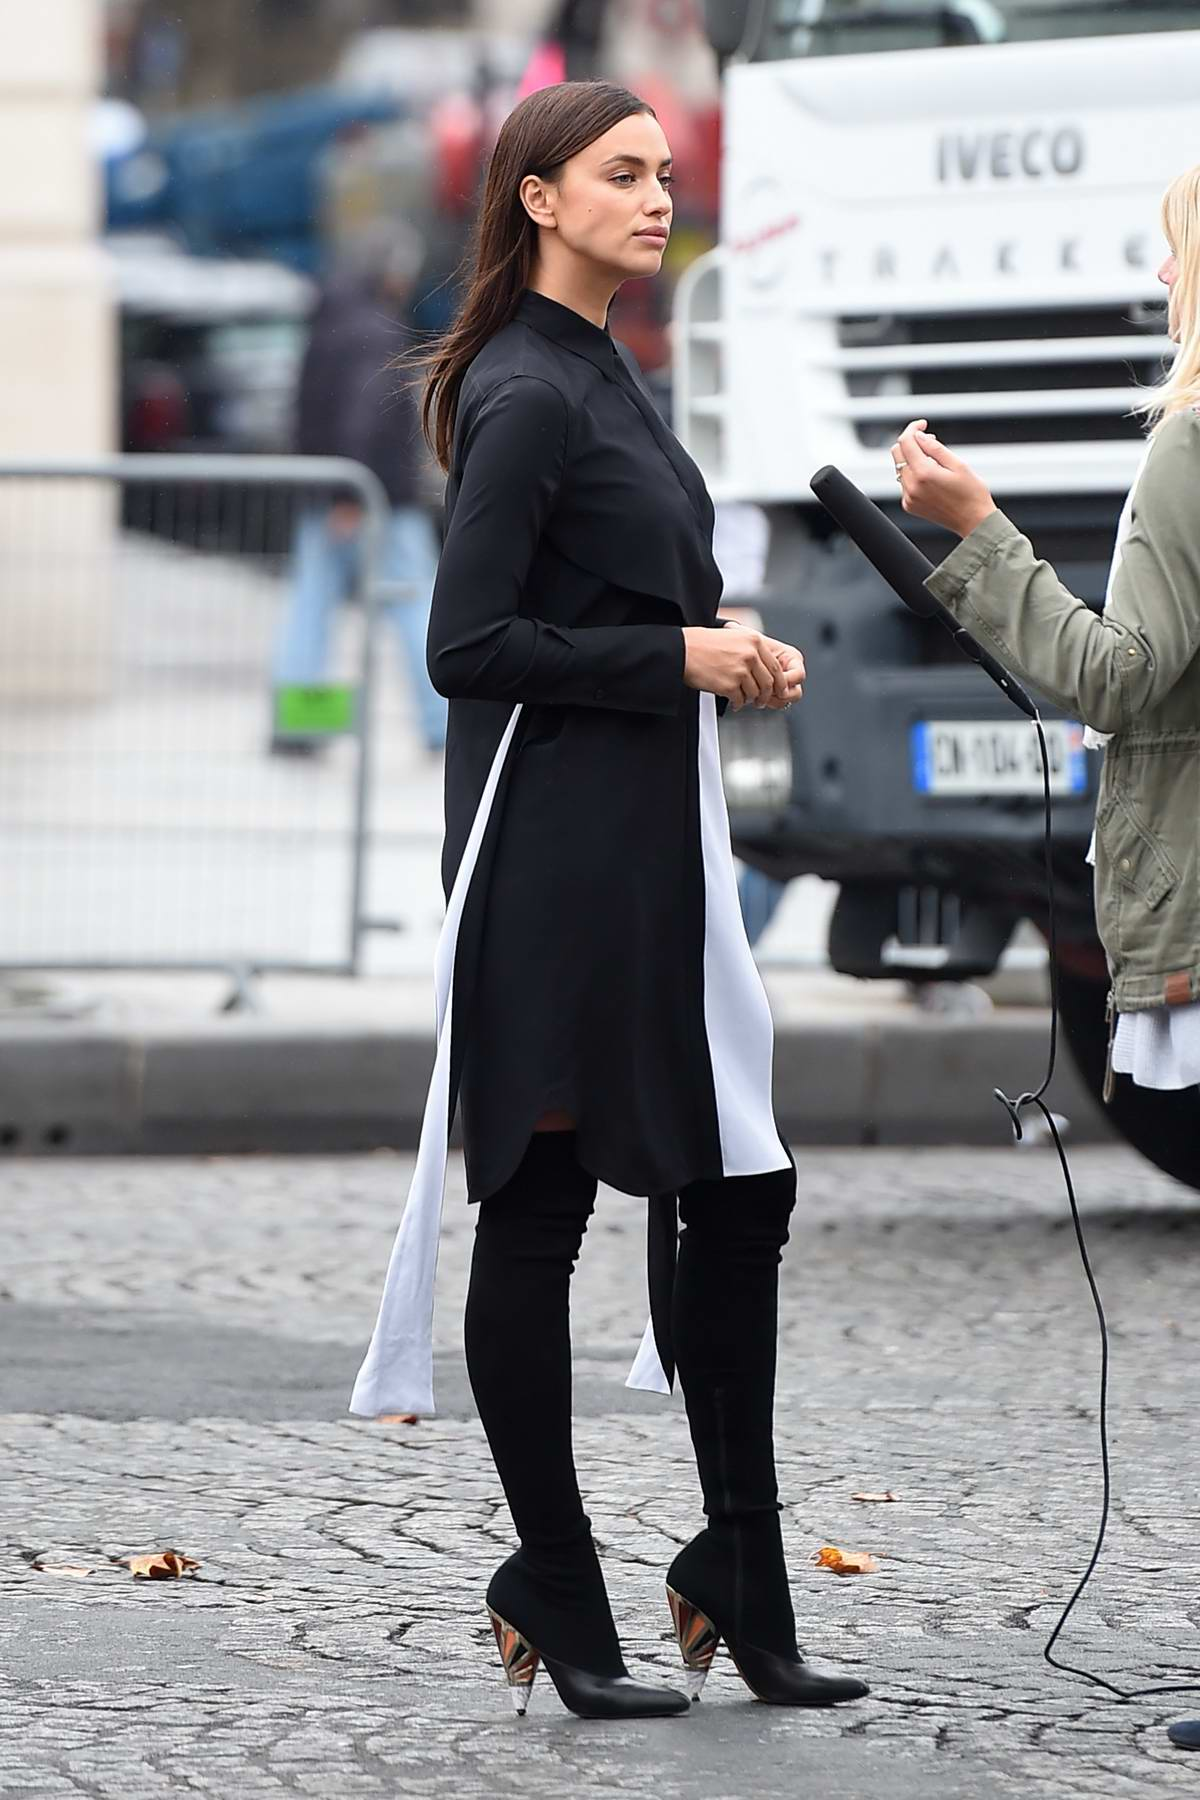 Irina Shayk arrive outside the L'Oreal show during Paris Fashion Week, France